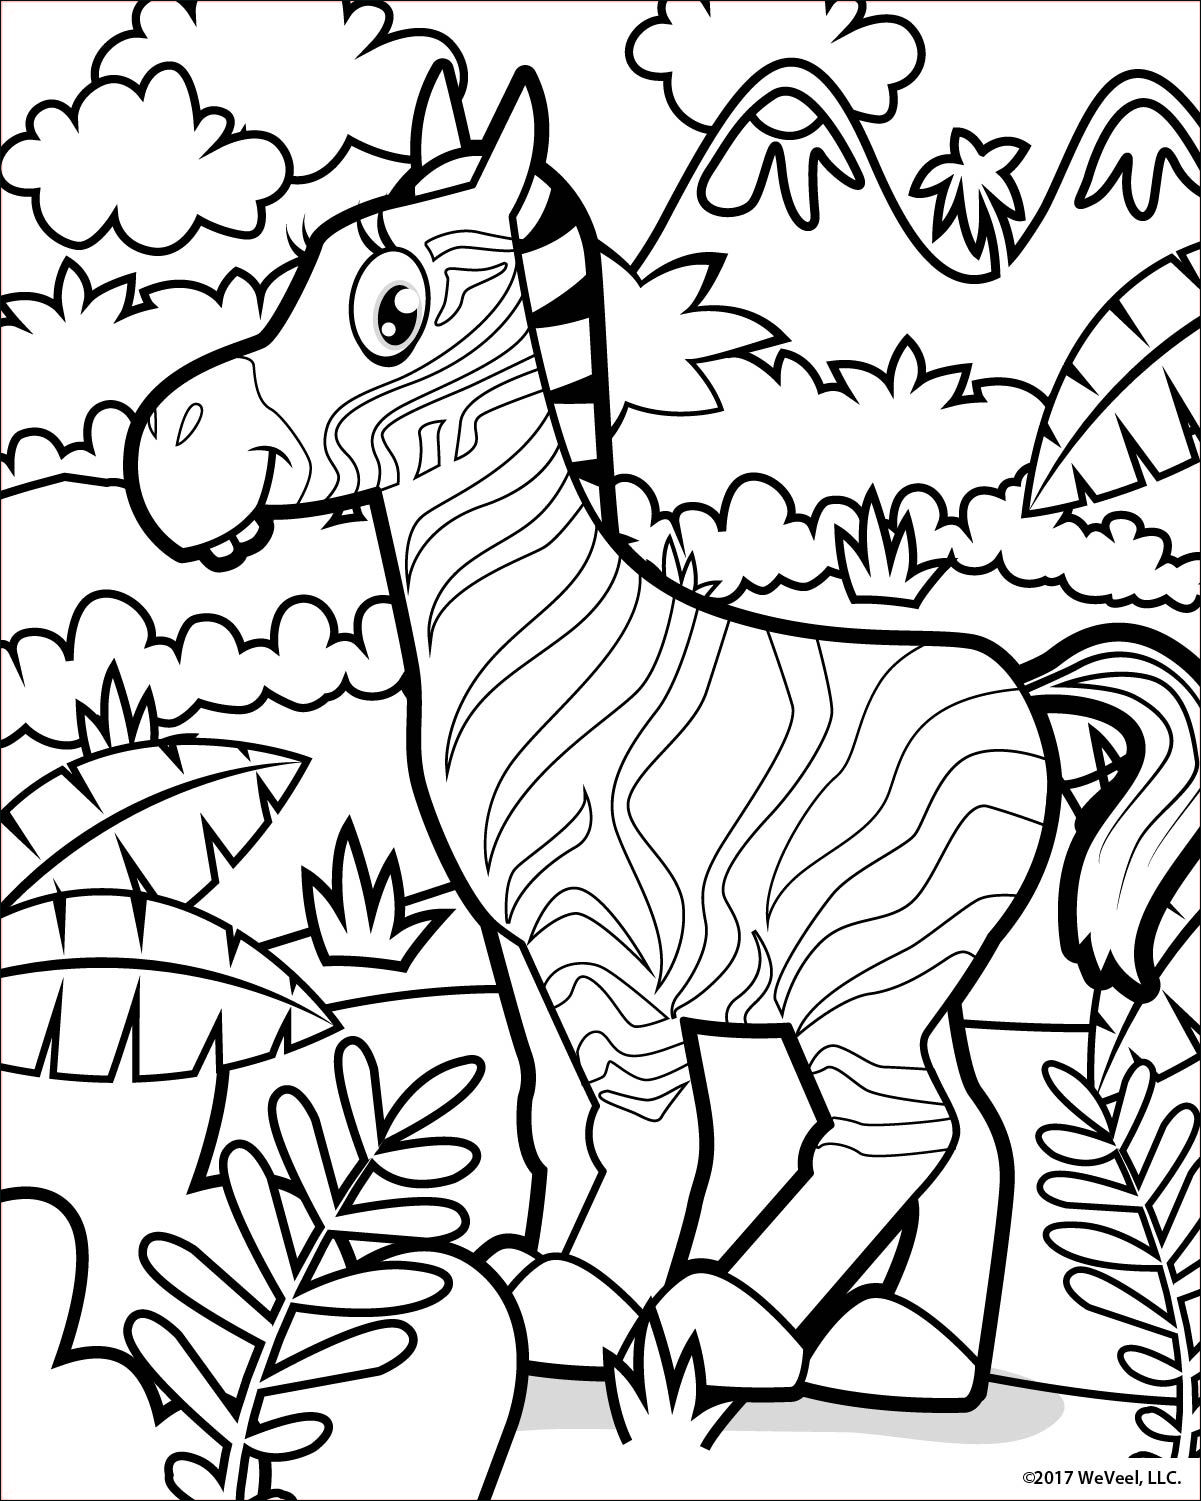 Coloring Pages Jungle Jungle Coloring Pages Free Kids Coloring Pages Coloring Pages